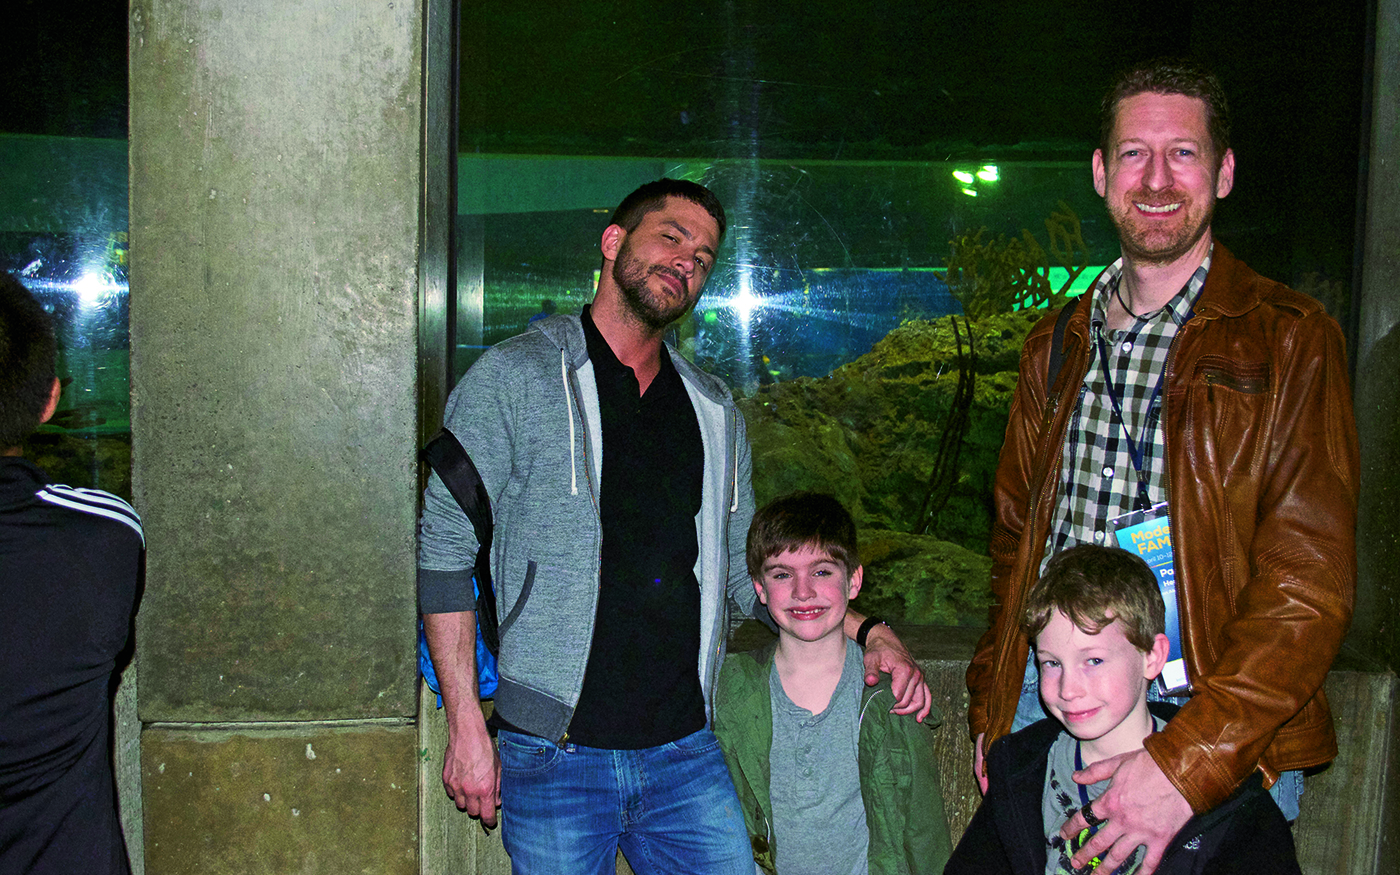 Blogger and journalist Frank Lowe with his son, Briggs, join the author and his son at the National Aquarium. Photo Credit: Courtesy of Paul J. Heney